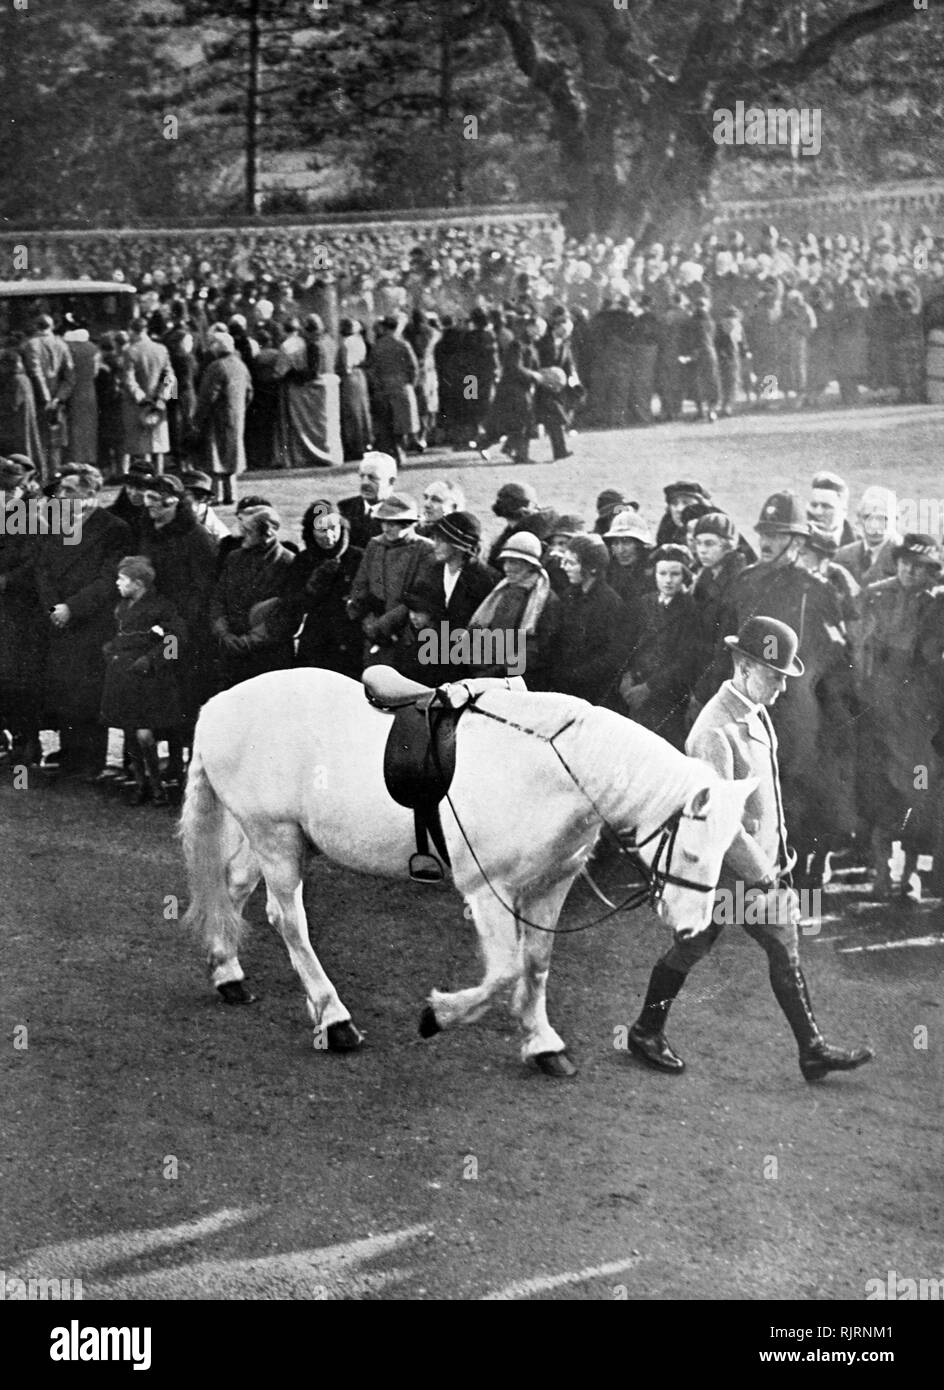 Jock' the King's horse is taken from Sandringham where the King died for the start of the funeral of King George V (1936); King of the United Kingdom and the British Dominions, and Emperor of India, from 6 May 1910 until his death in 1936. the cortege leaves Sandringham. - Stock Image